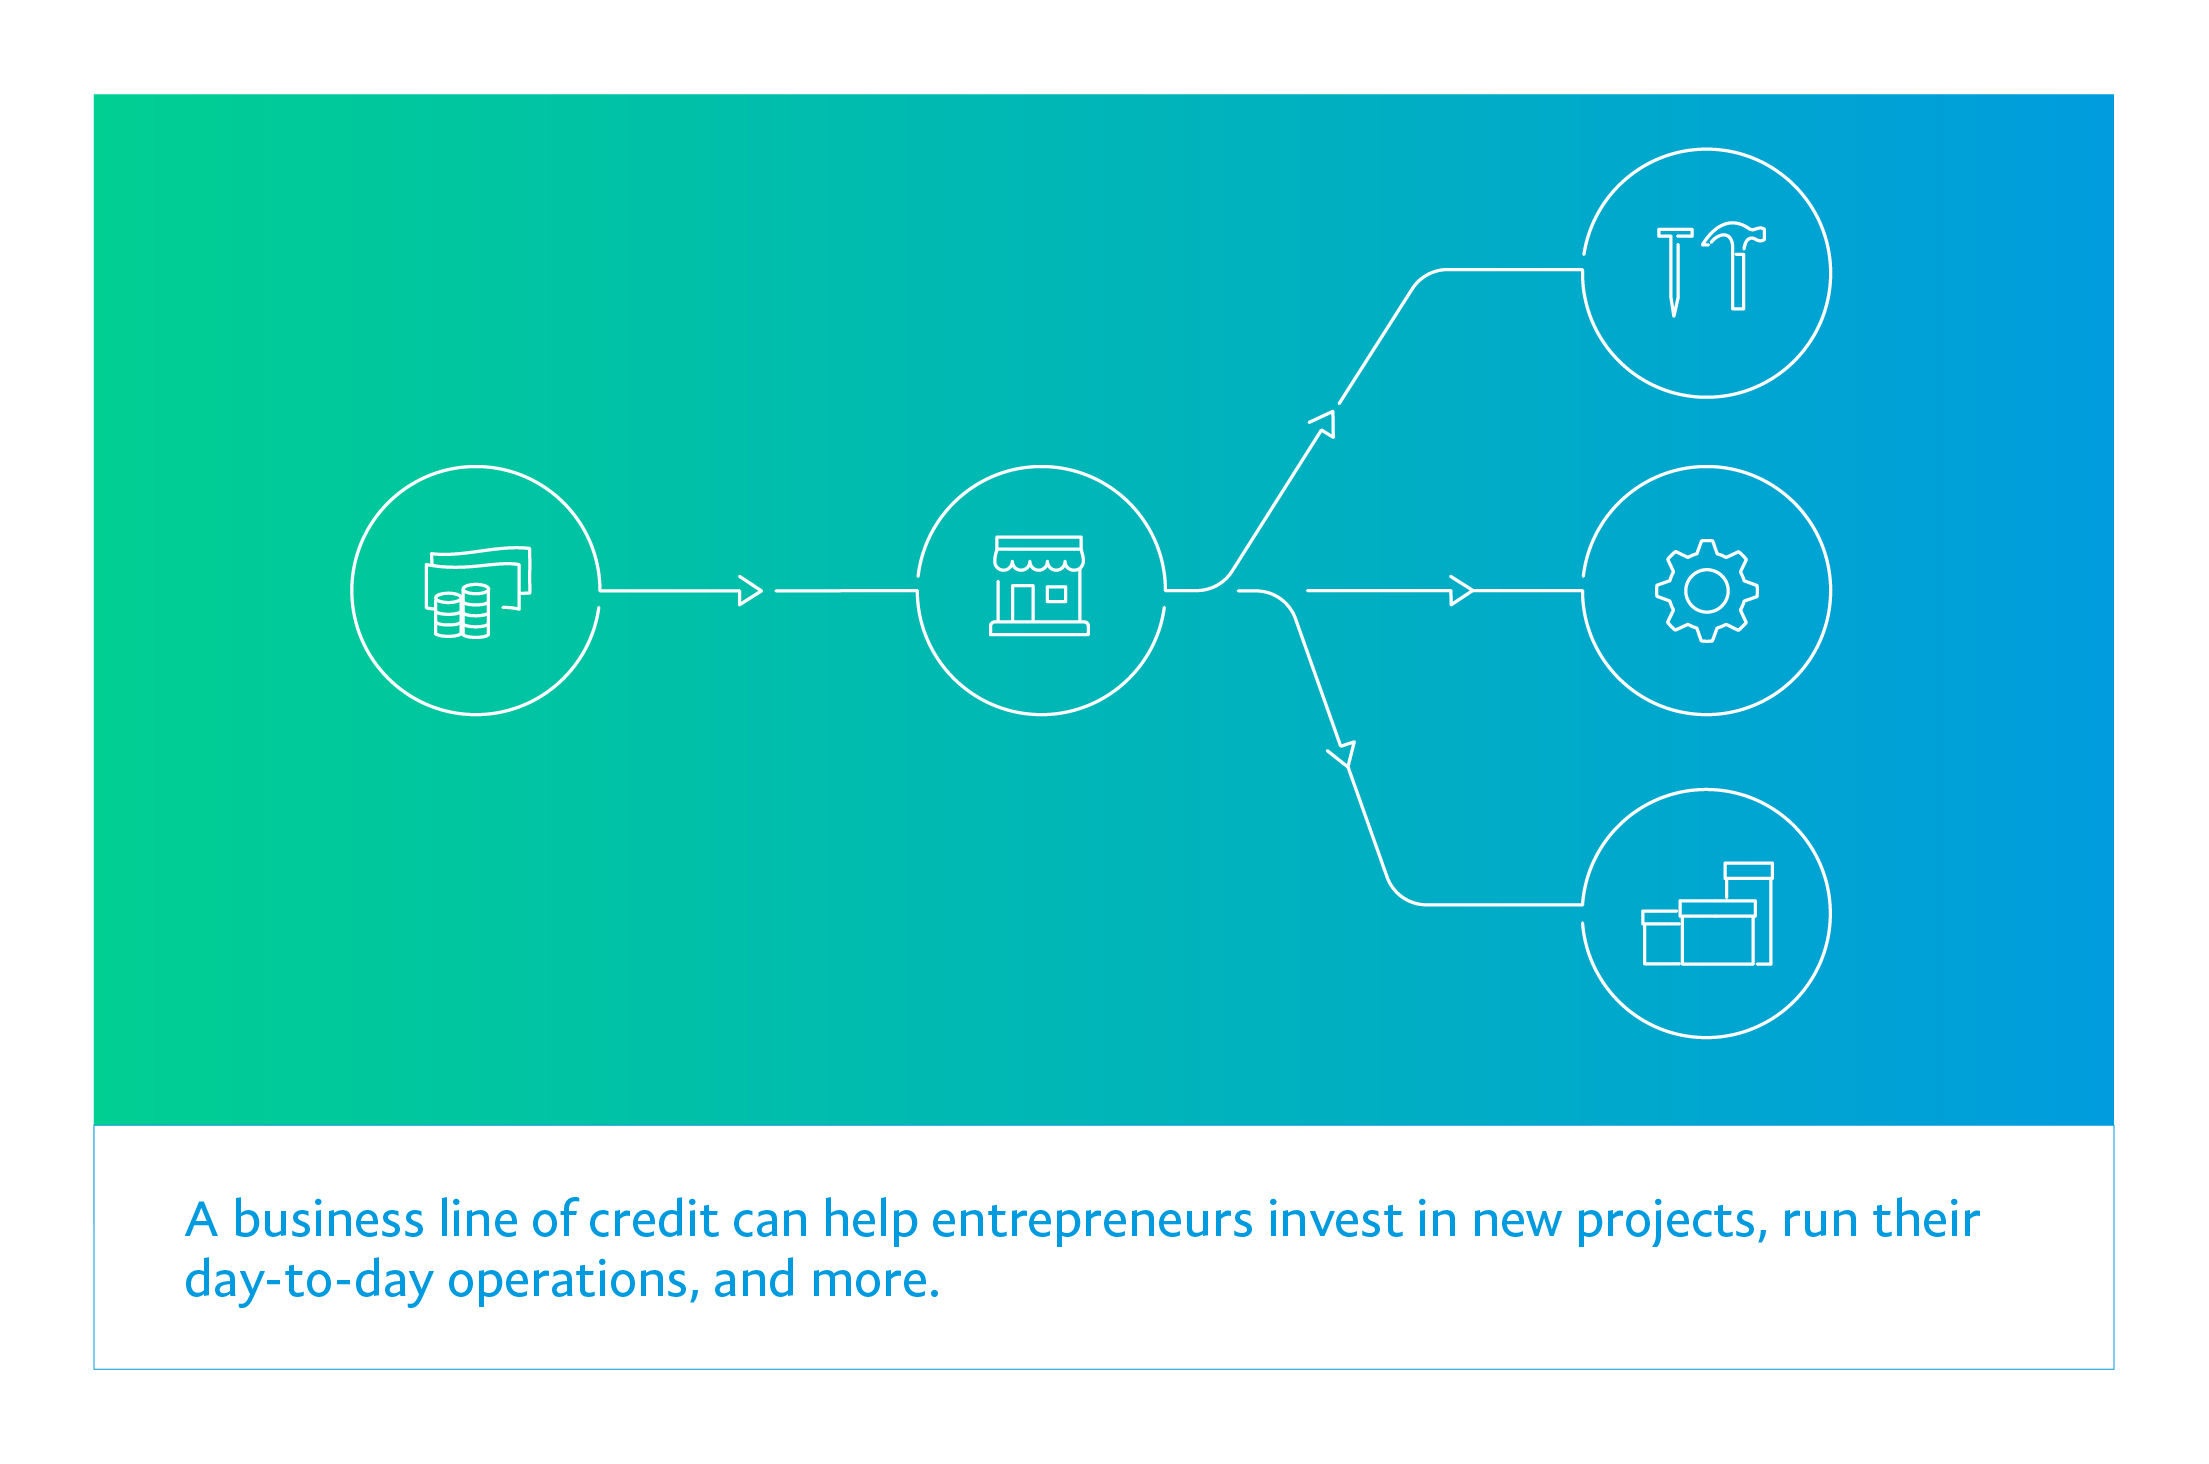 A business loan can help entrepreneurs invest in both new projects and day-to-day operations.